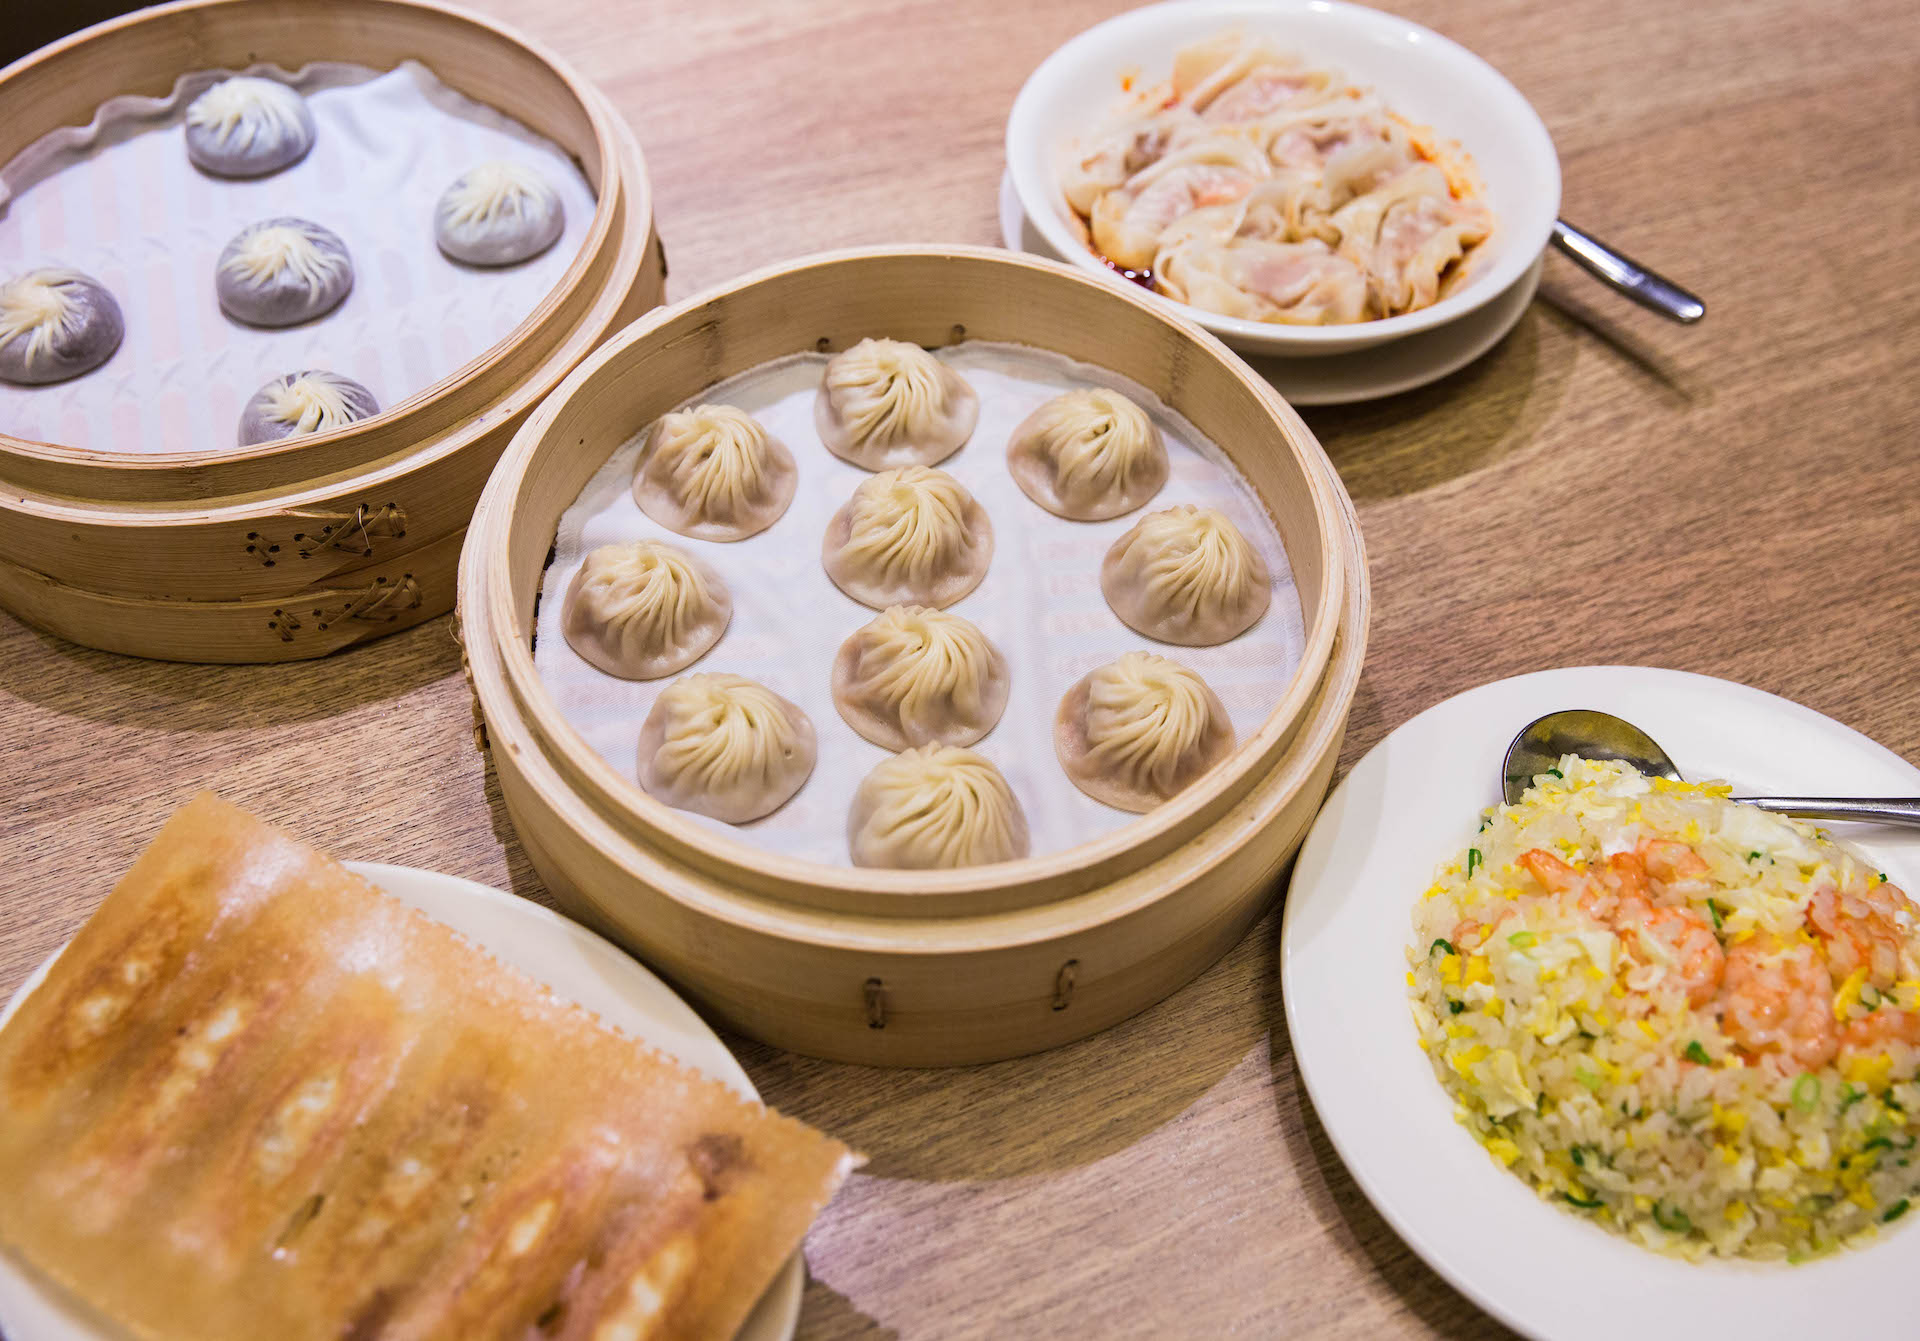 A sample spread. In the middle, the famous soup dumplings. From the left going clockwise, spicy wontons, shrimp fried rice, pot stickers, and red bean dumplings.